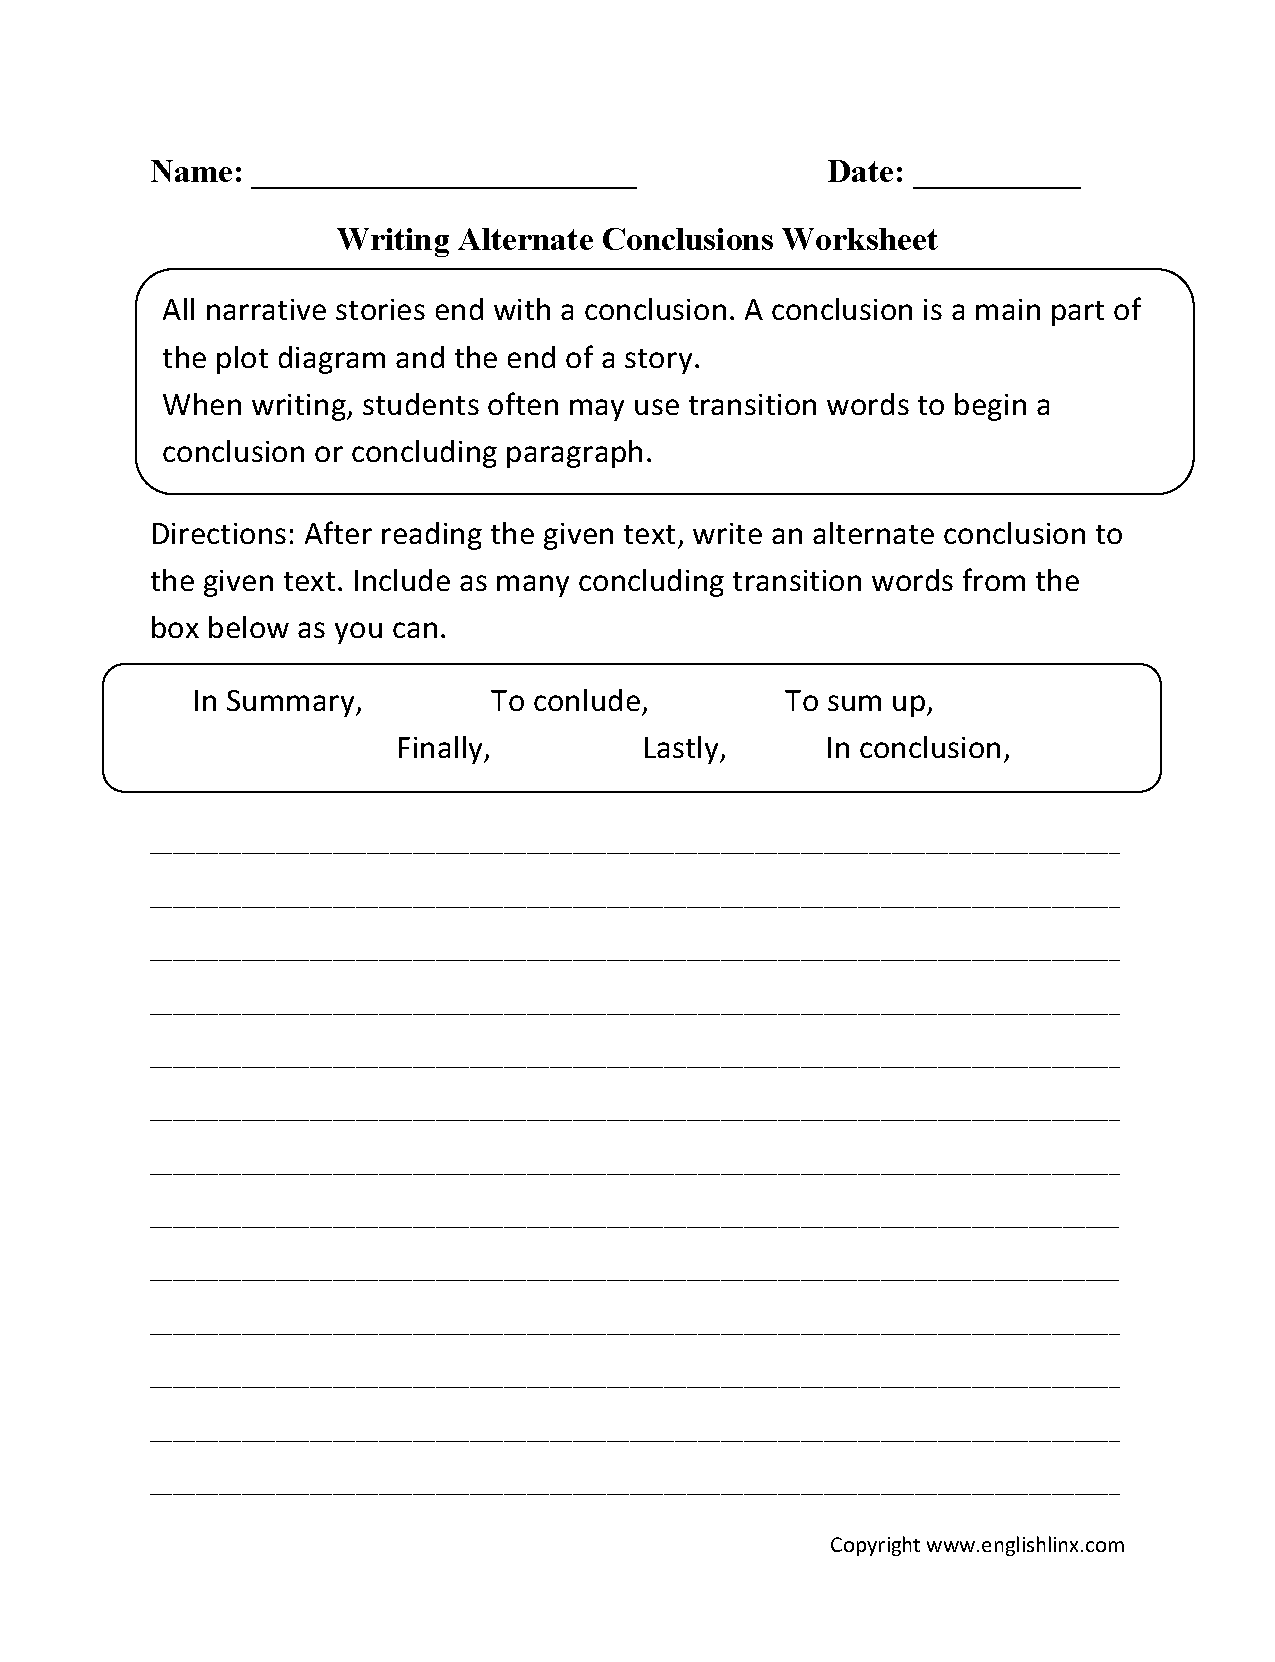 Uncategorized Writing Worksheets For 3rd Grade englishlinx com writing conclusions worksheets alternate worksheets